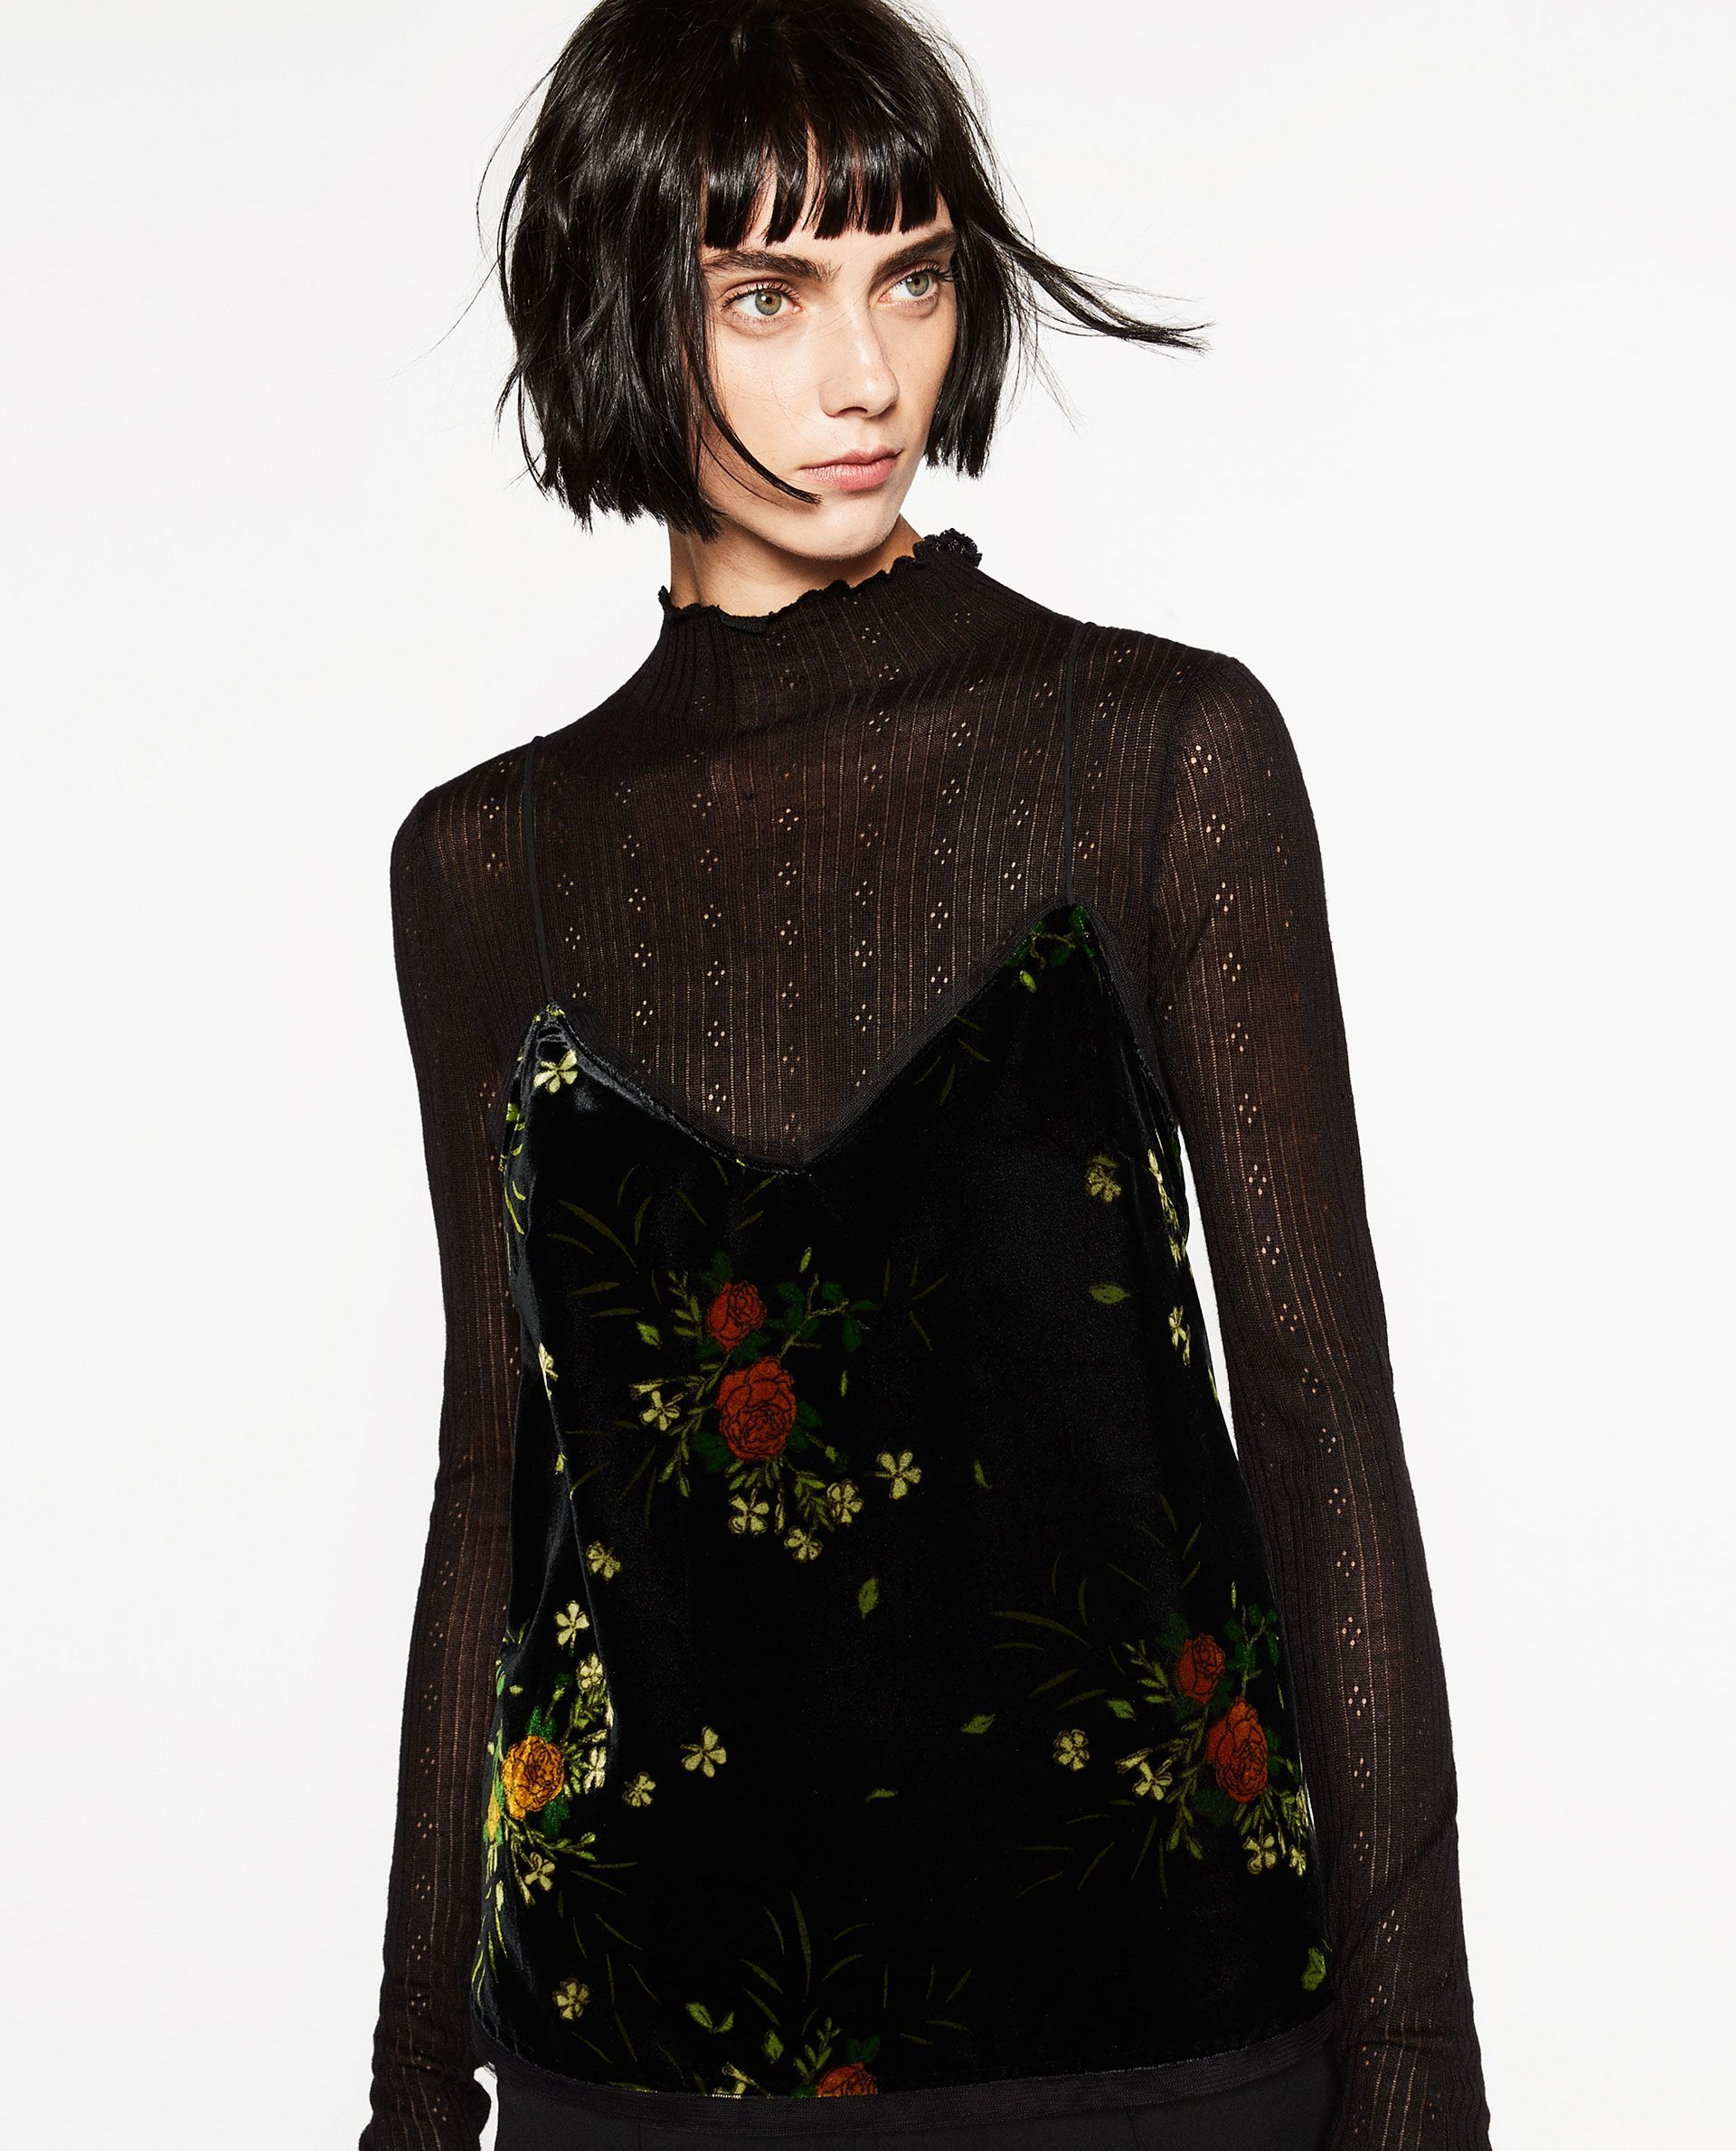 b1bedade2f5 Best Zara Clothing - New Arrivals Fall Fashion. We can t wait to layer this  over every long-sleeved top we own.